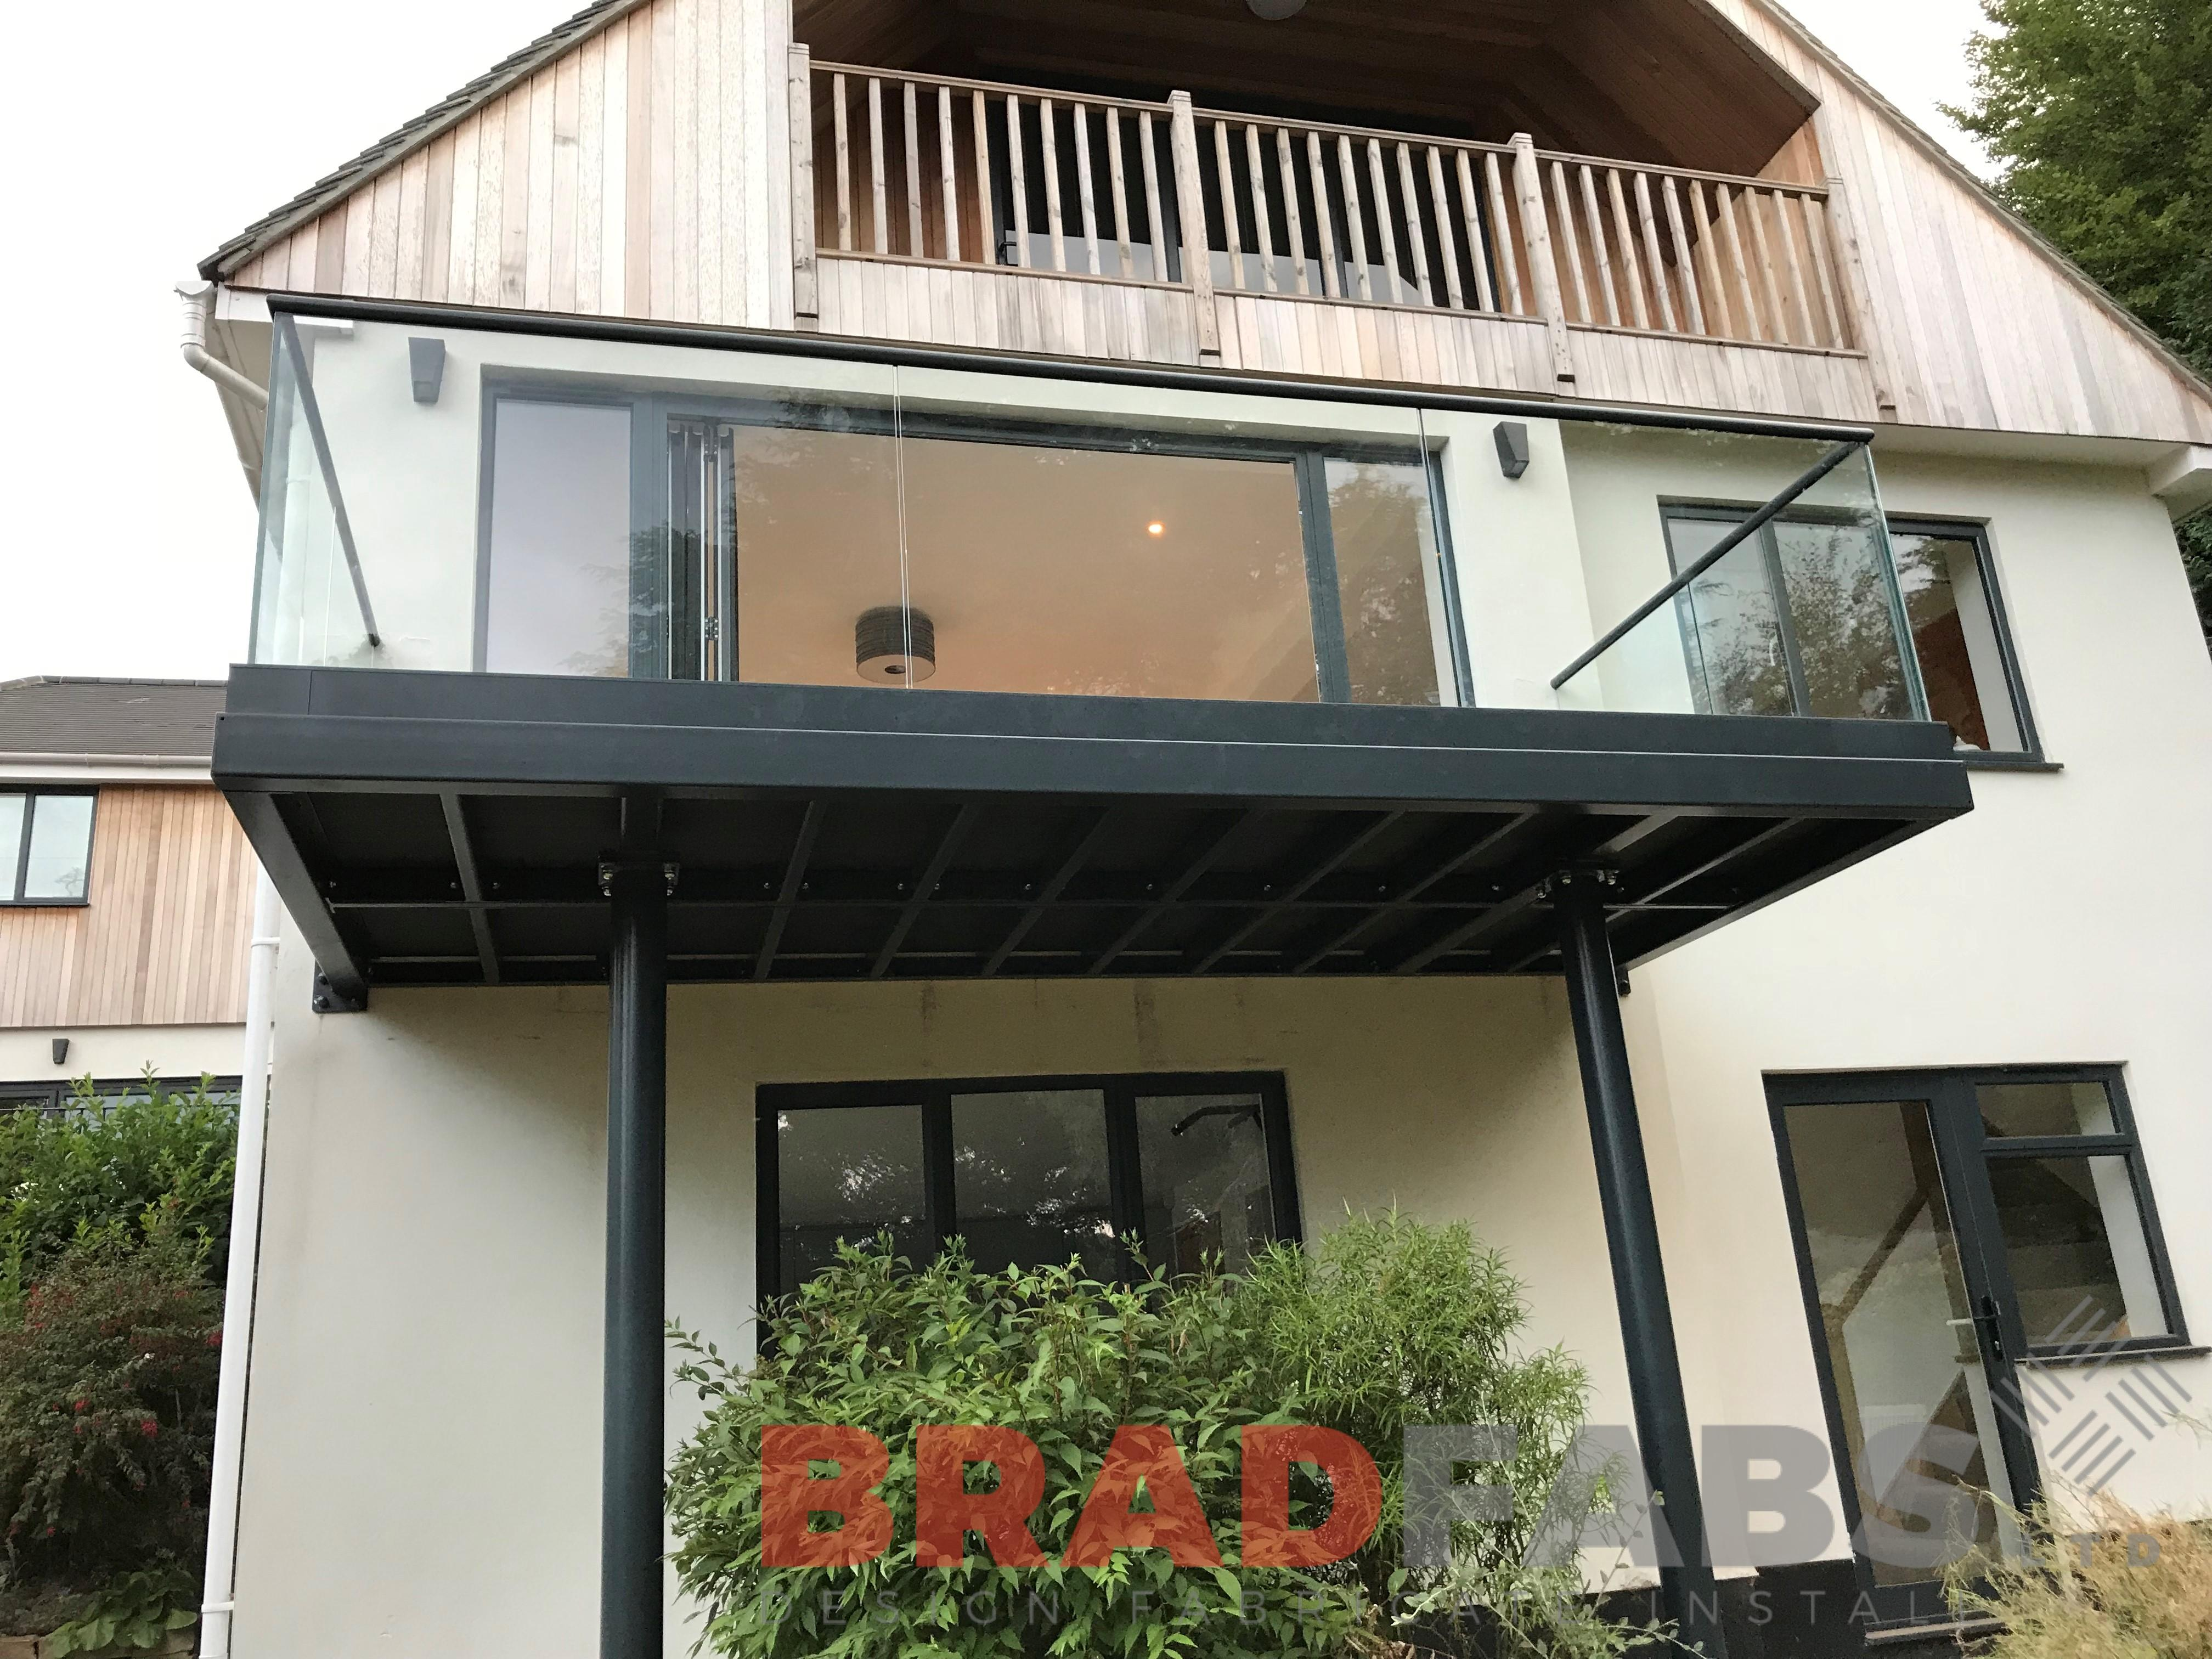 Steel balcony manufactured by Bradfabs - UK balcony manufacturers